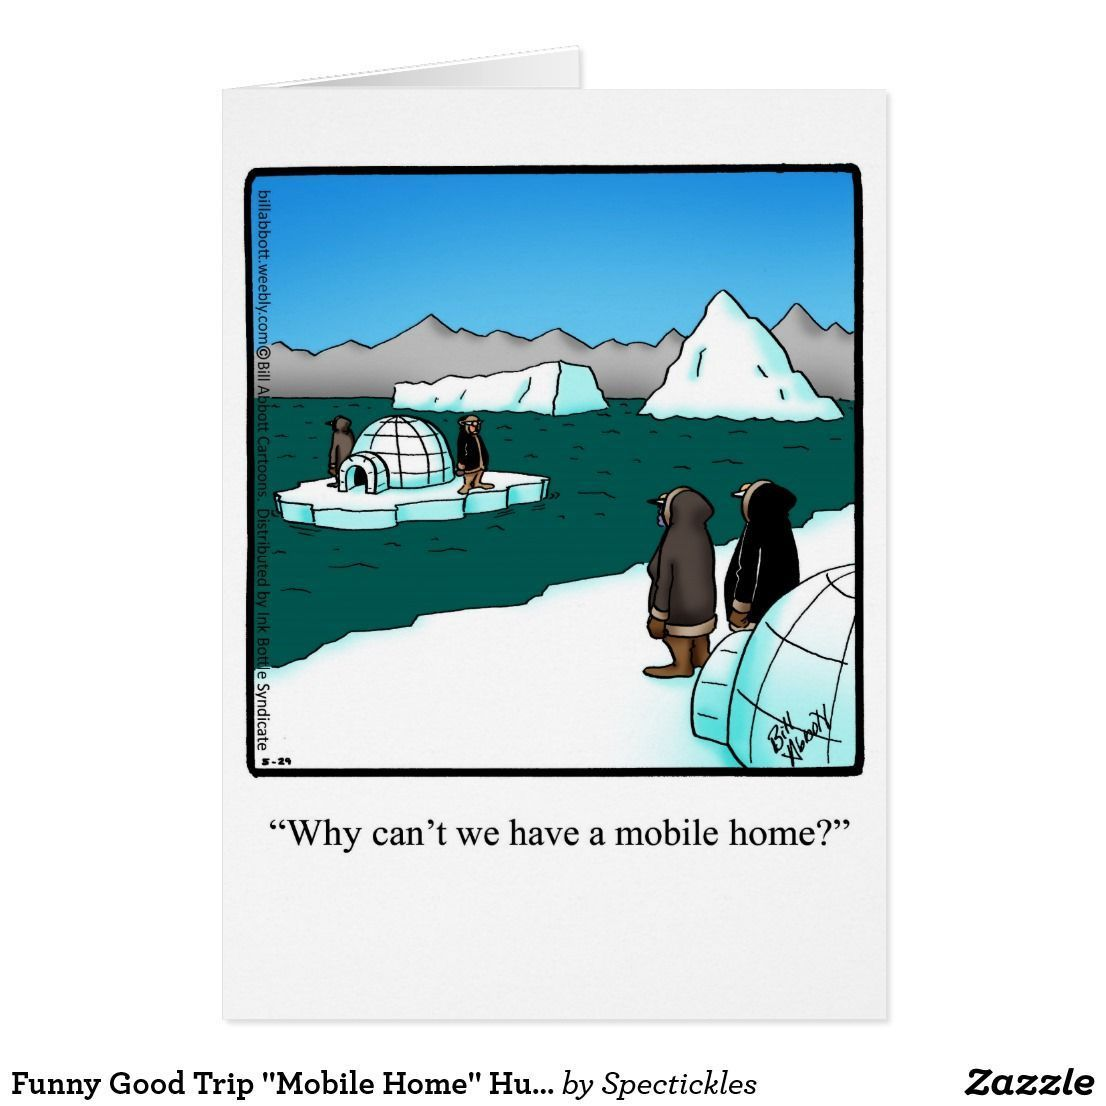 Funny Good Trip Mobile Home Humor Greeting Card | Home Humor ... on heavy equipment by owner, used mobile home sale owner, mobile home parks sale owner, apartments for rent by owner, mobile homes for rent,